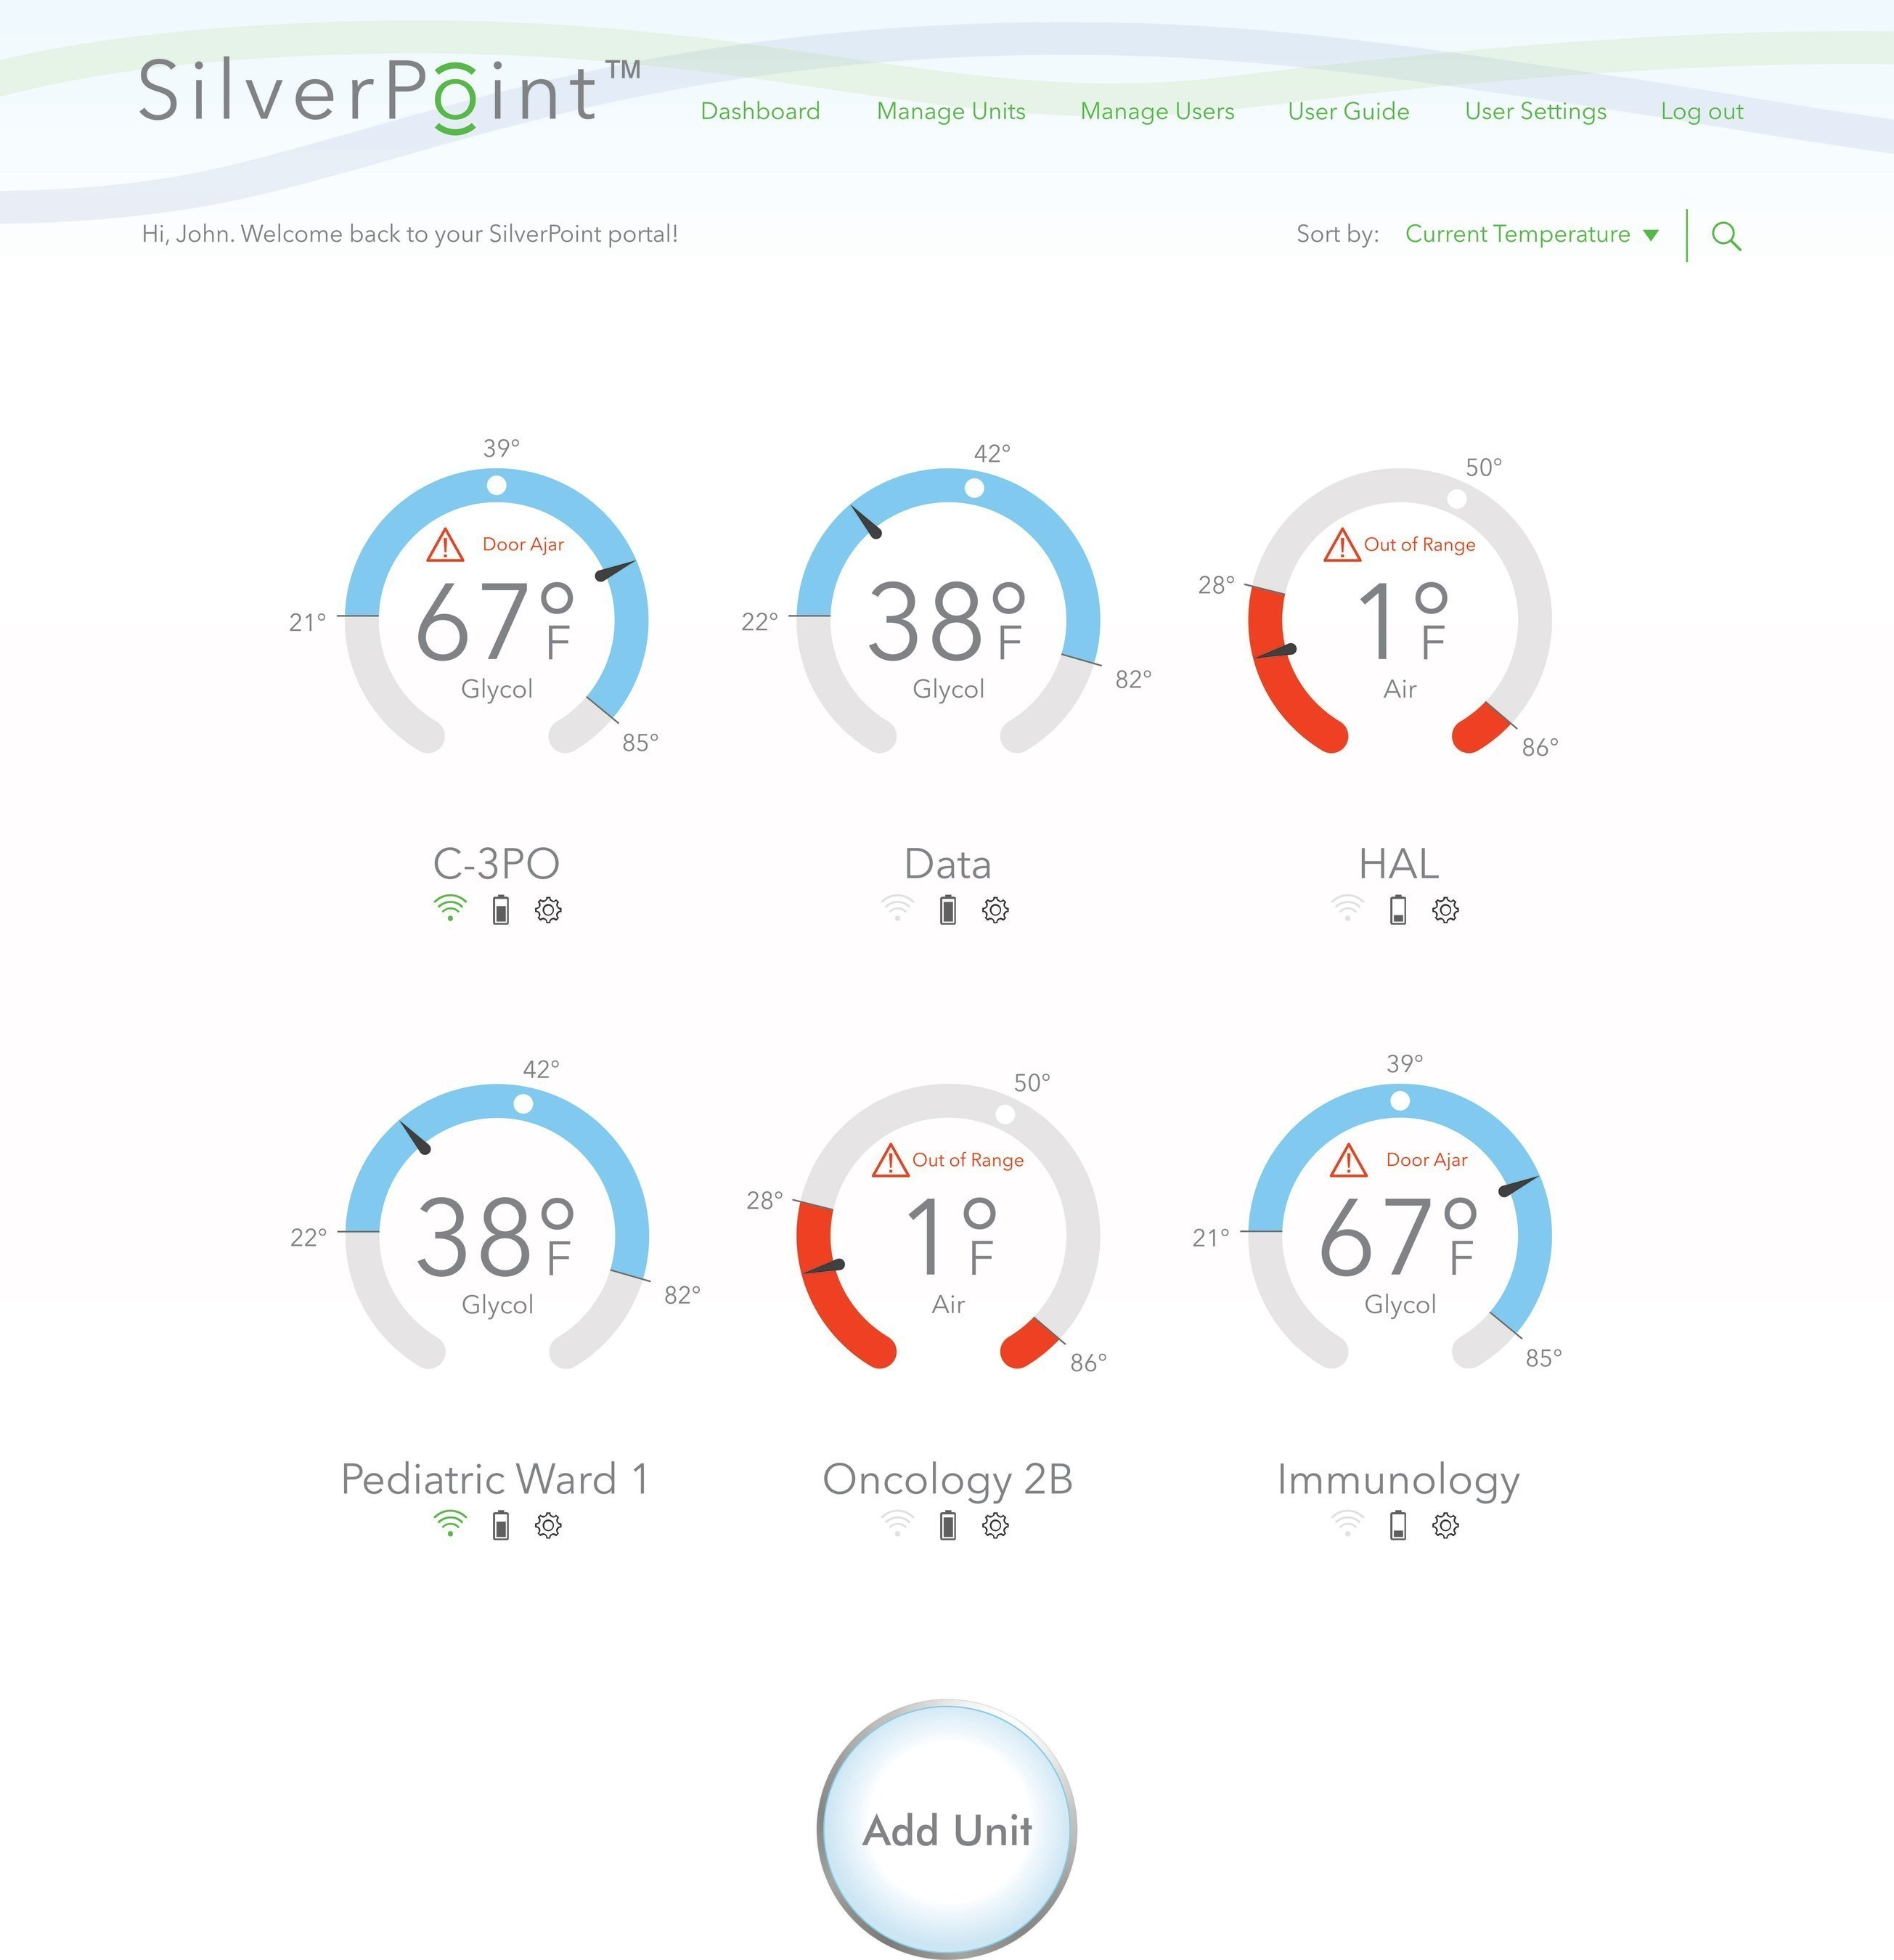 SilverPoint is a secure database providing remote access to regular temperature readings and alert events for all connected units.